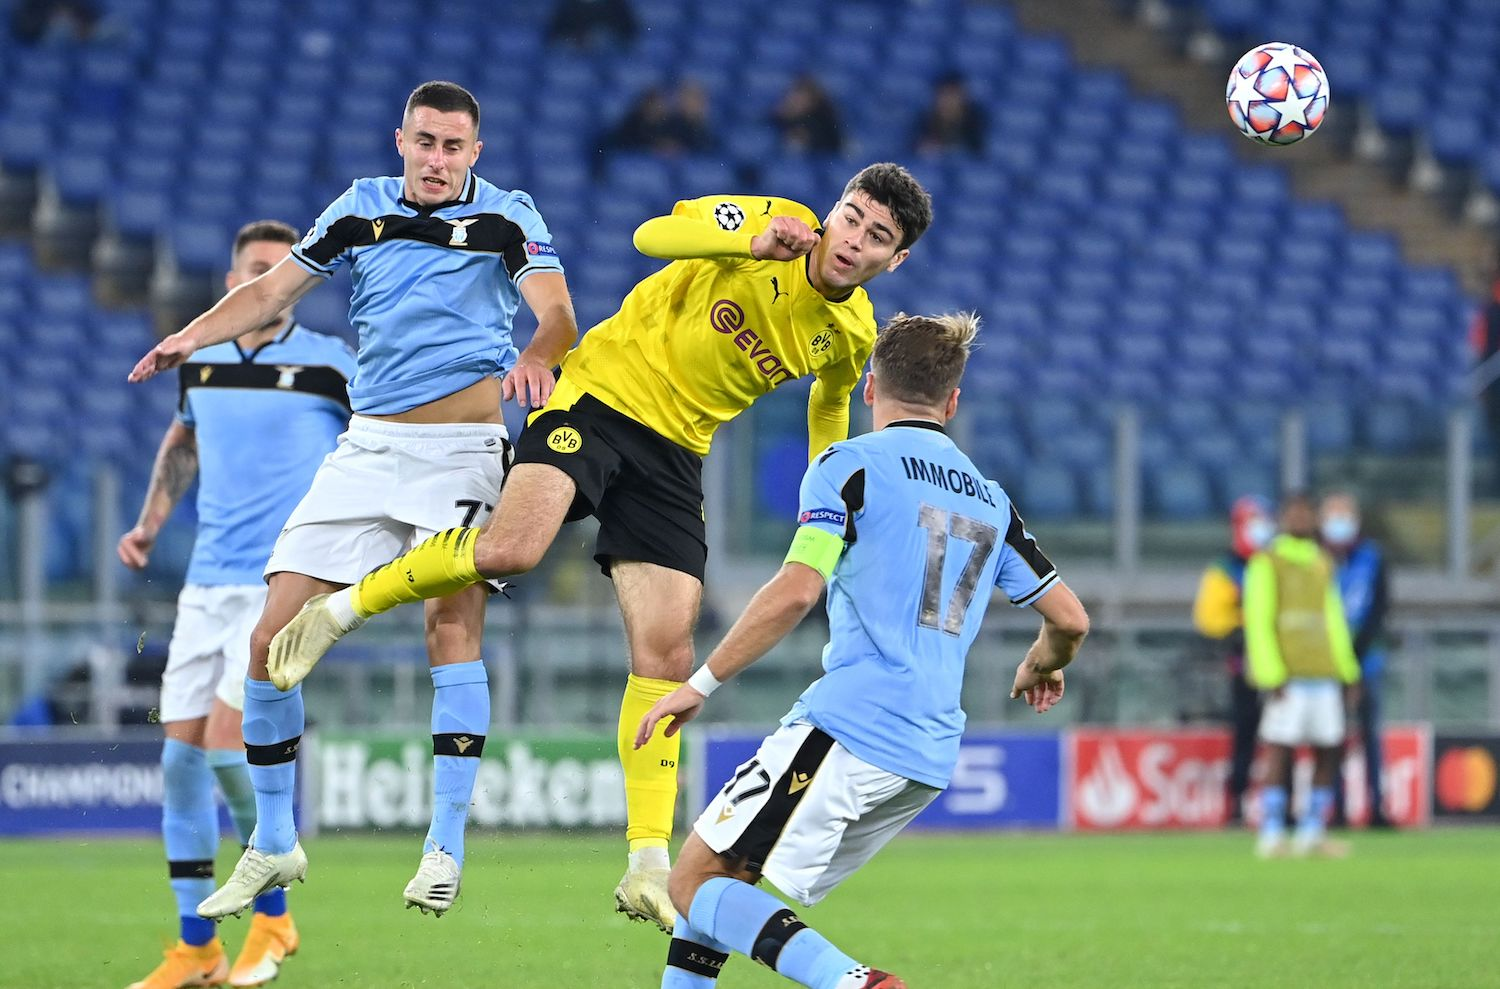 Borussia Dortmund's American forward Giovanni Reyna (C) is challenged by Lazio's Montenegrin midfielder Adam Marusic during the UEFA Champions League first round first leg, group F, football match between Lazio and Borussia Dortmund, at the Olympic stadium in Rome, on October 20, 2020. (Photo by Alberto PIZZOLI / AFP) (Photo by ALBERTO PIZZOLI/AFP via Getty Images)